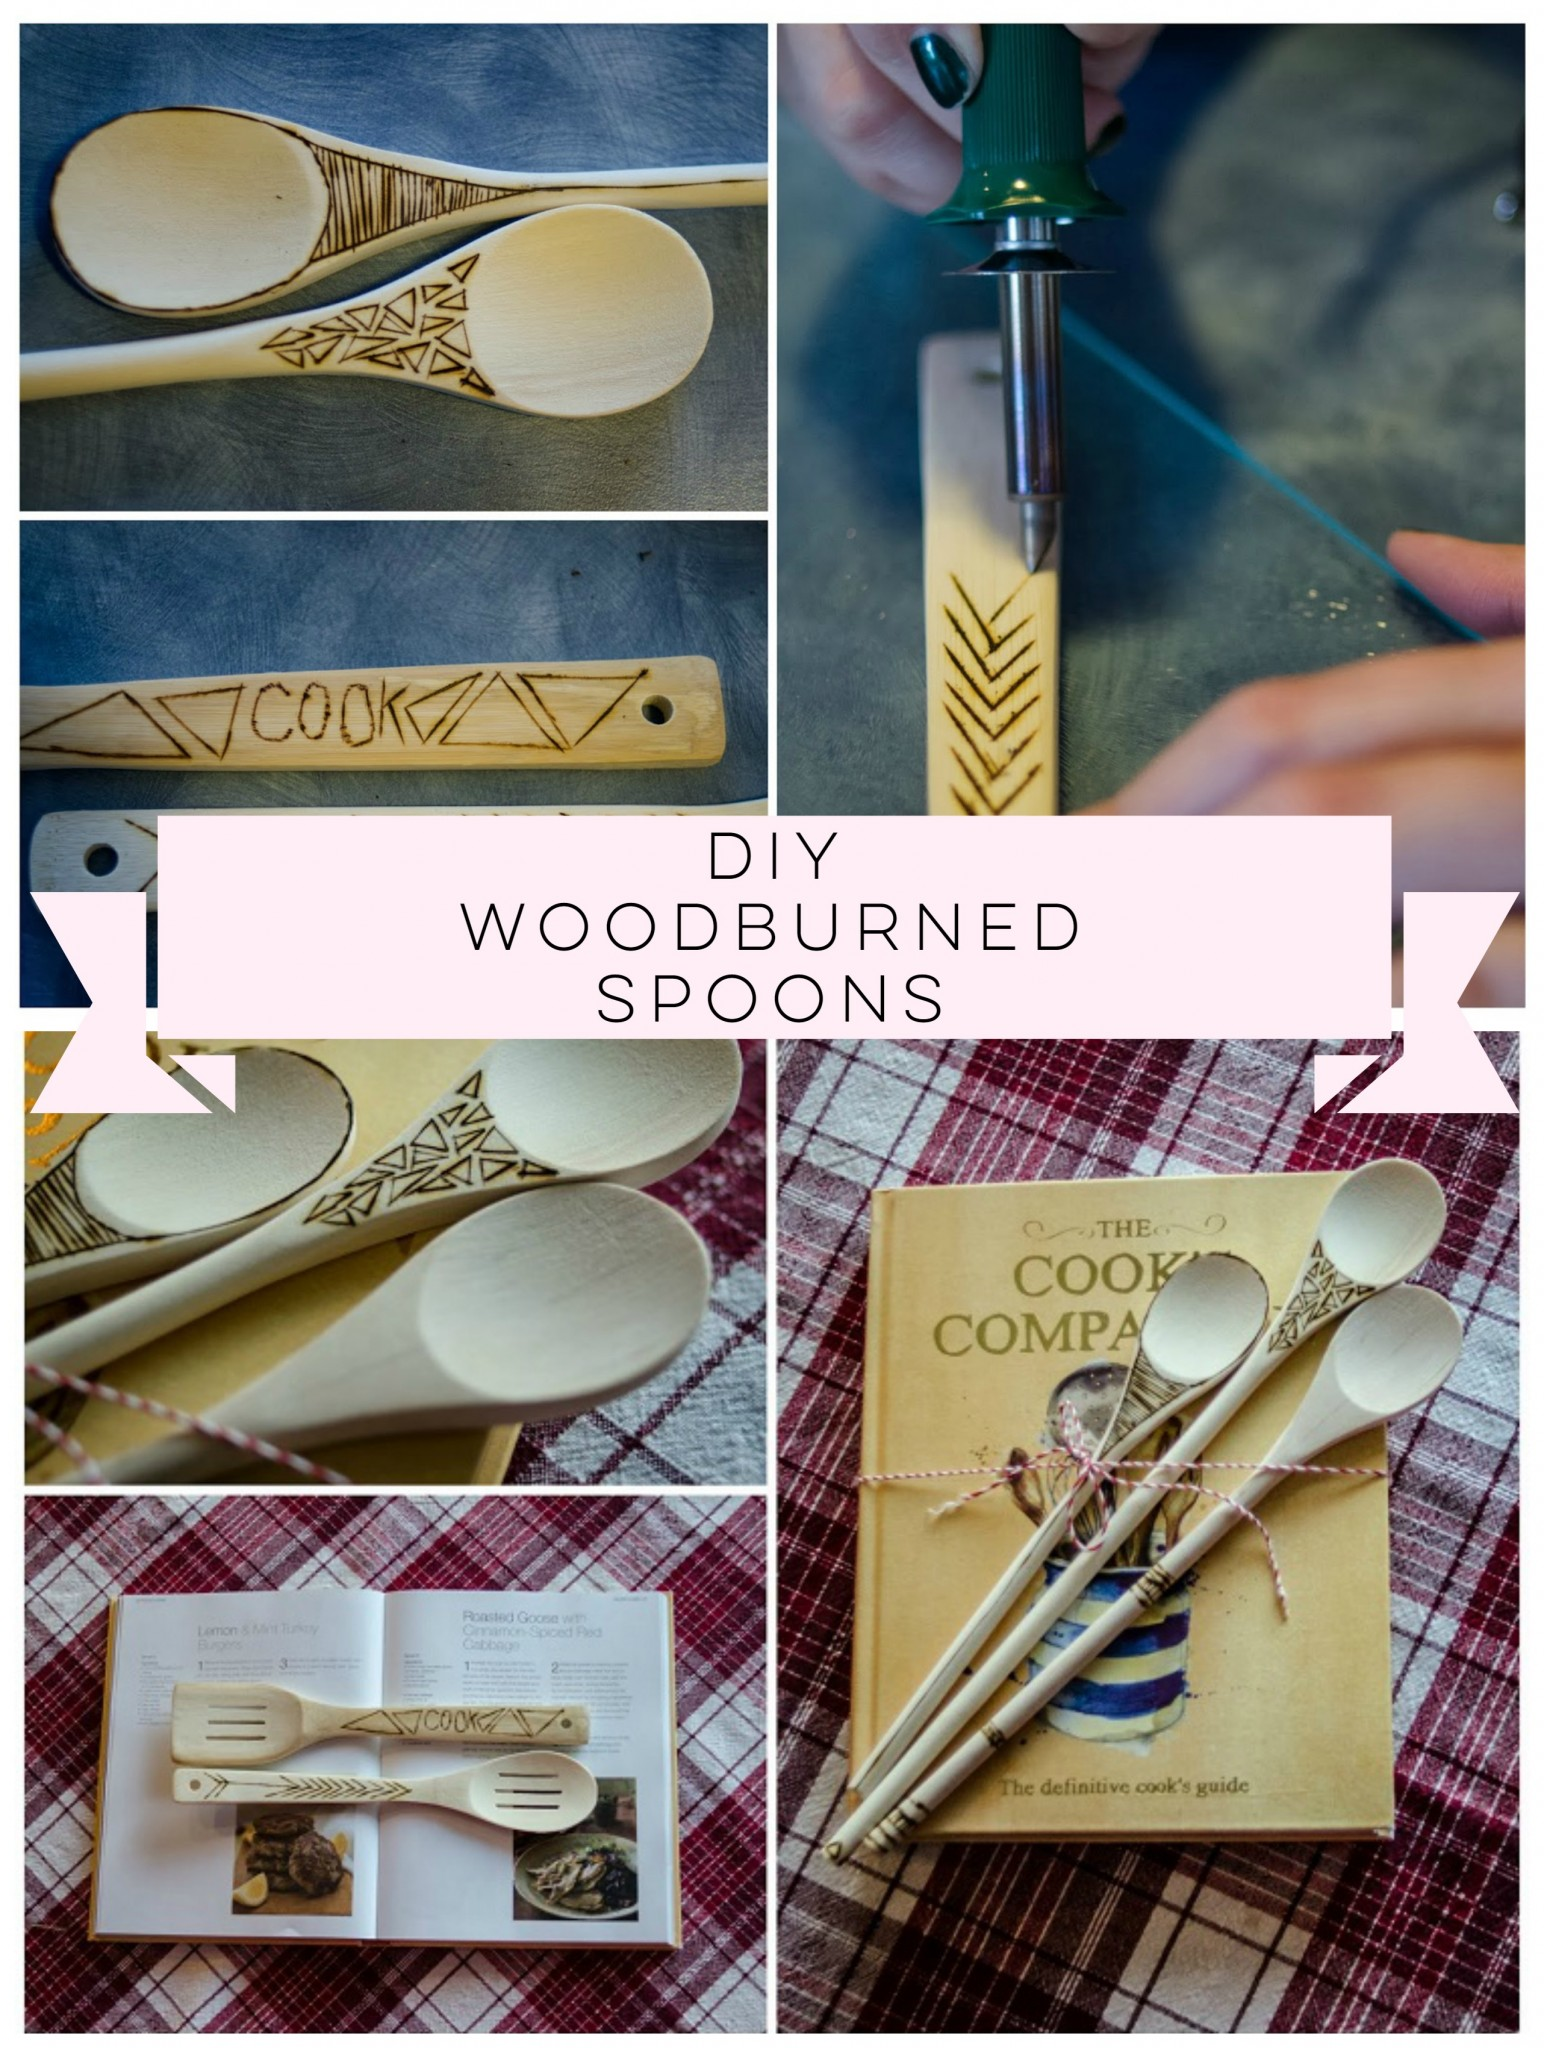 These DIY Woodburned Spoons would make a great gift! Or look great in my kitchen.